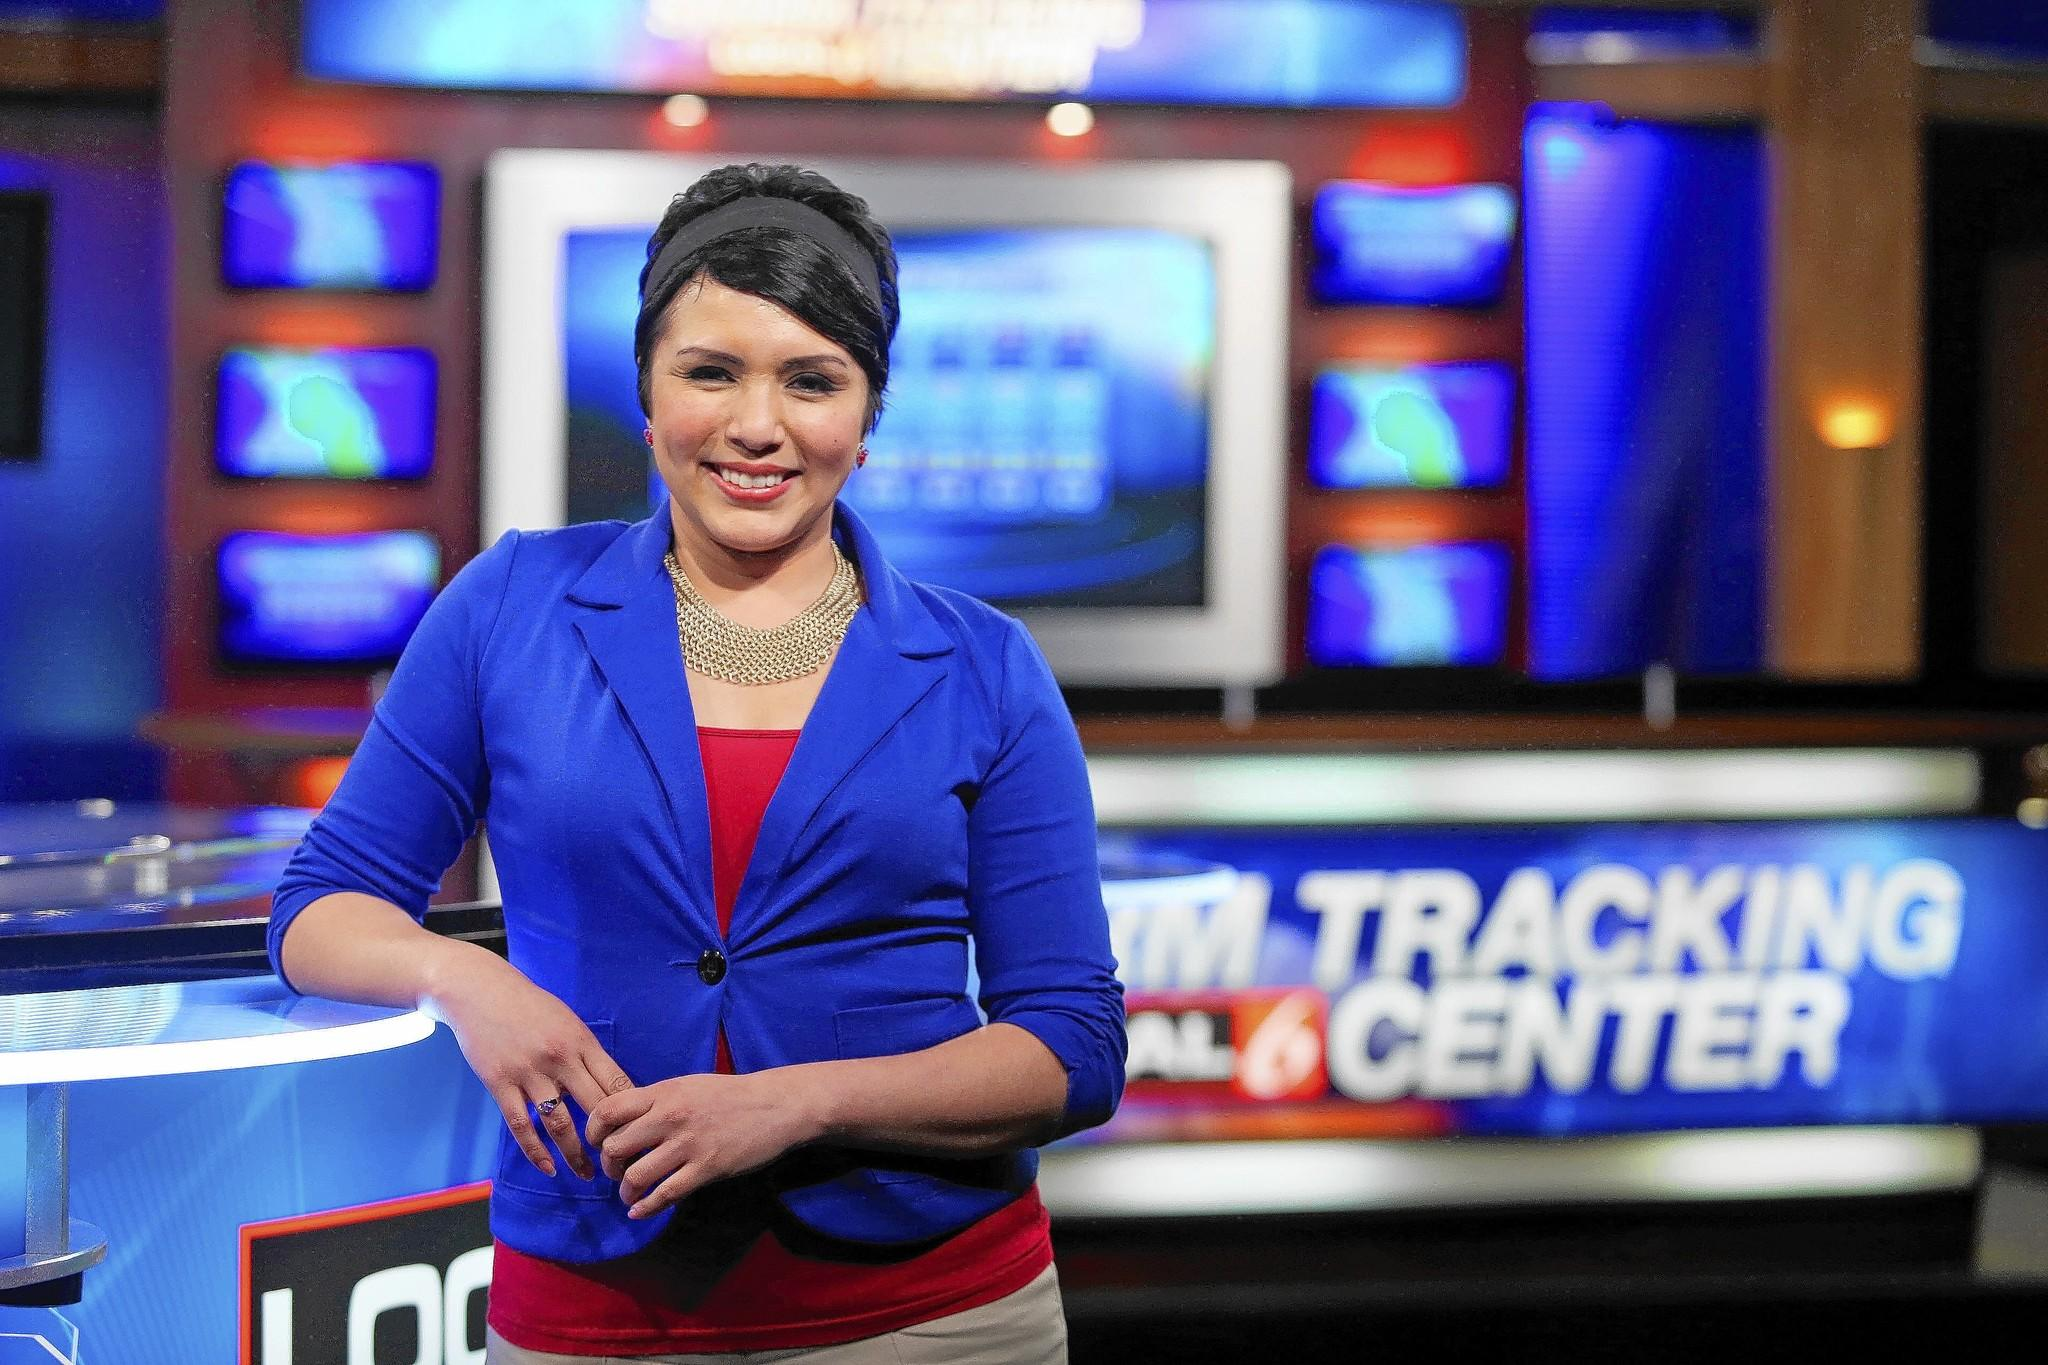 WKMG-Channel 6 traffic reporter Jessica Sanchez will be back on the air at 6 a.m. Tuesday after a cancer battle knocked her off the air 11 months ago.